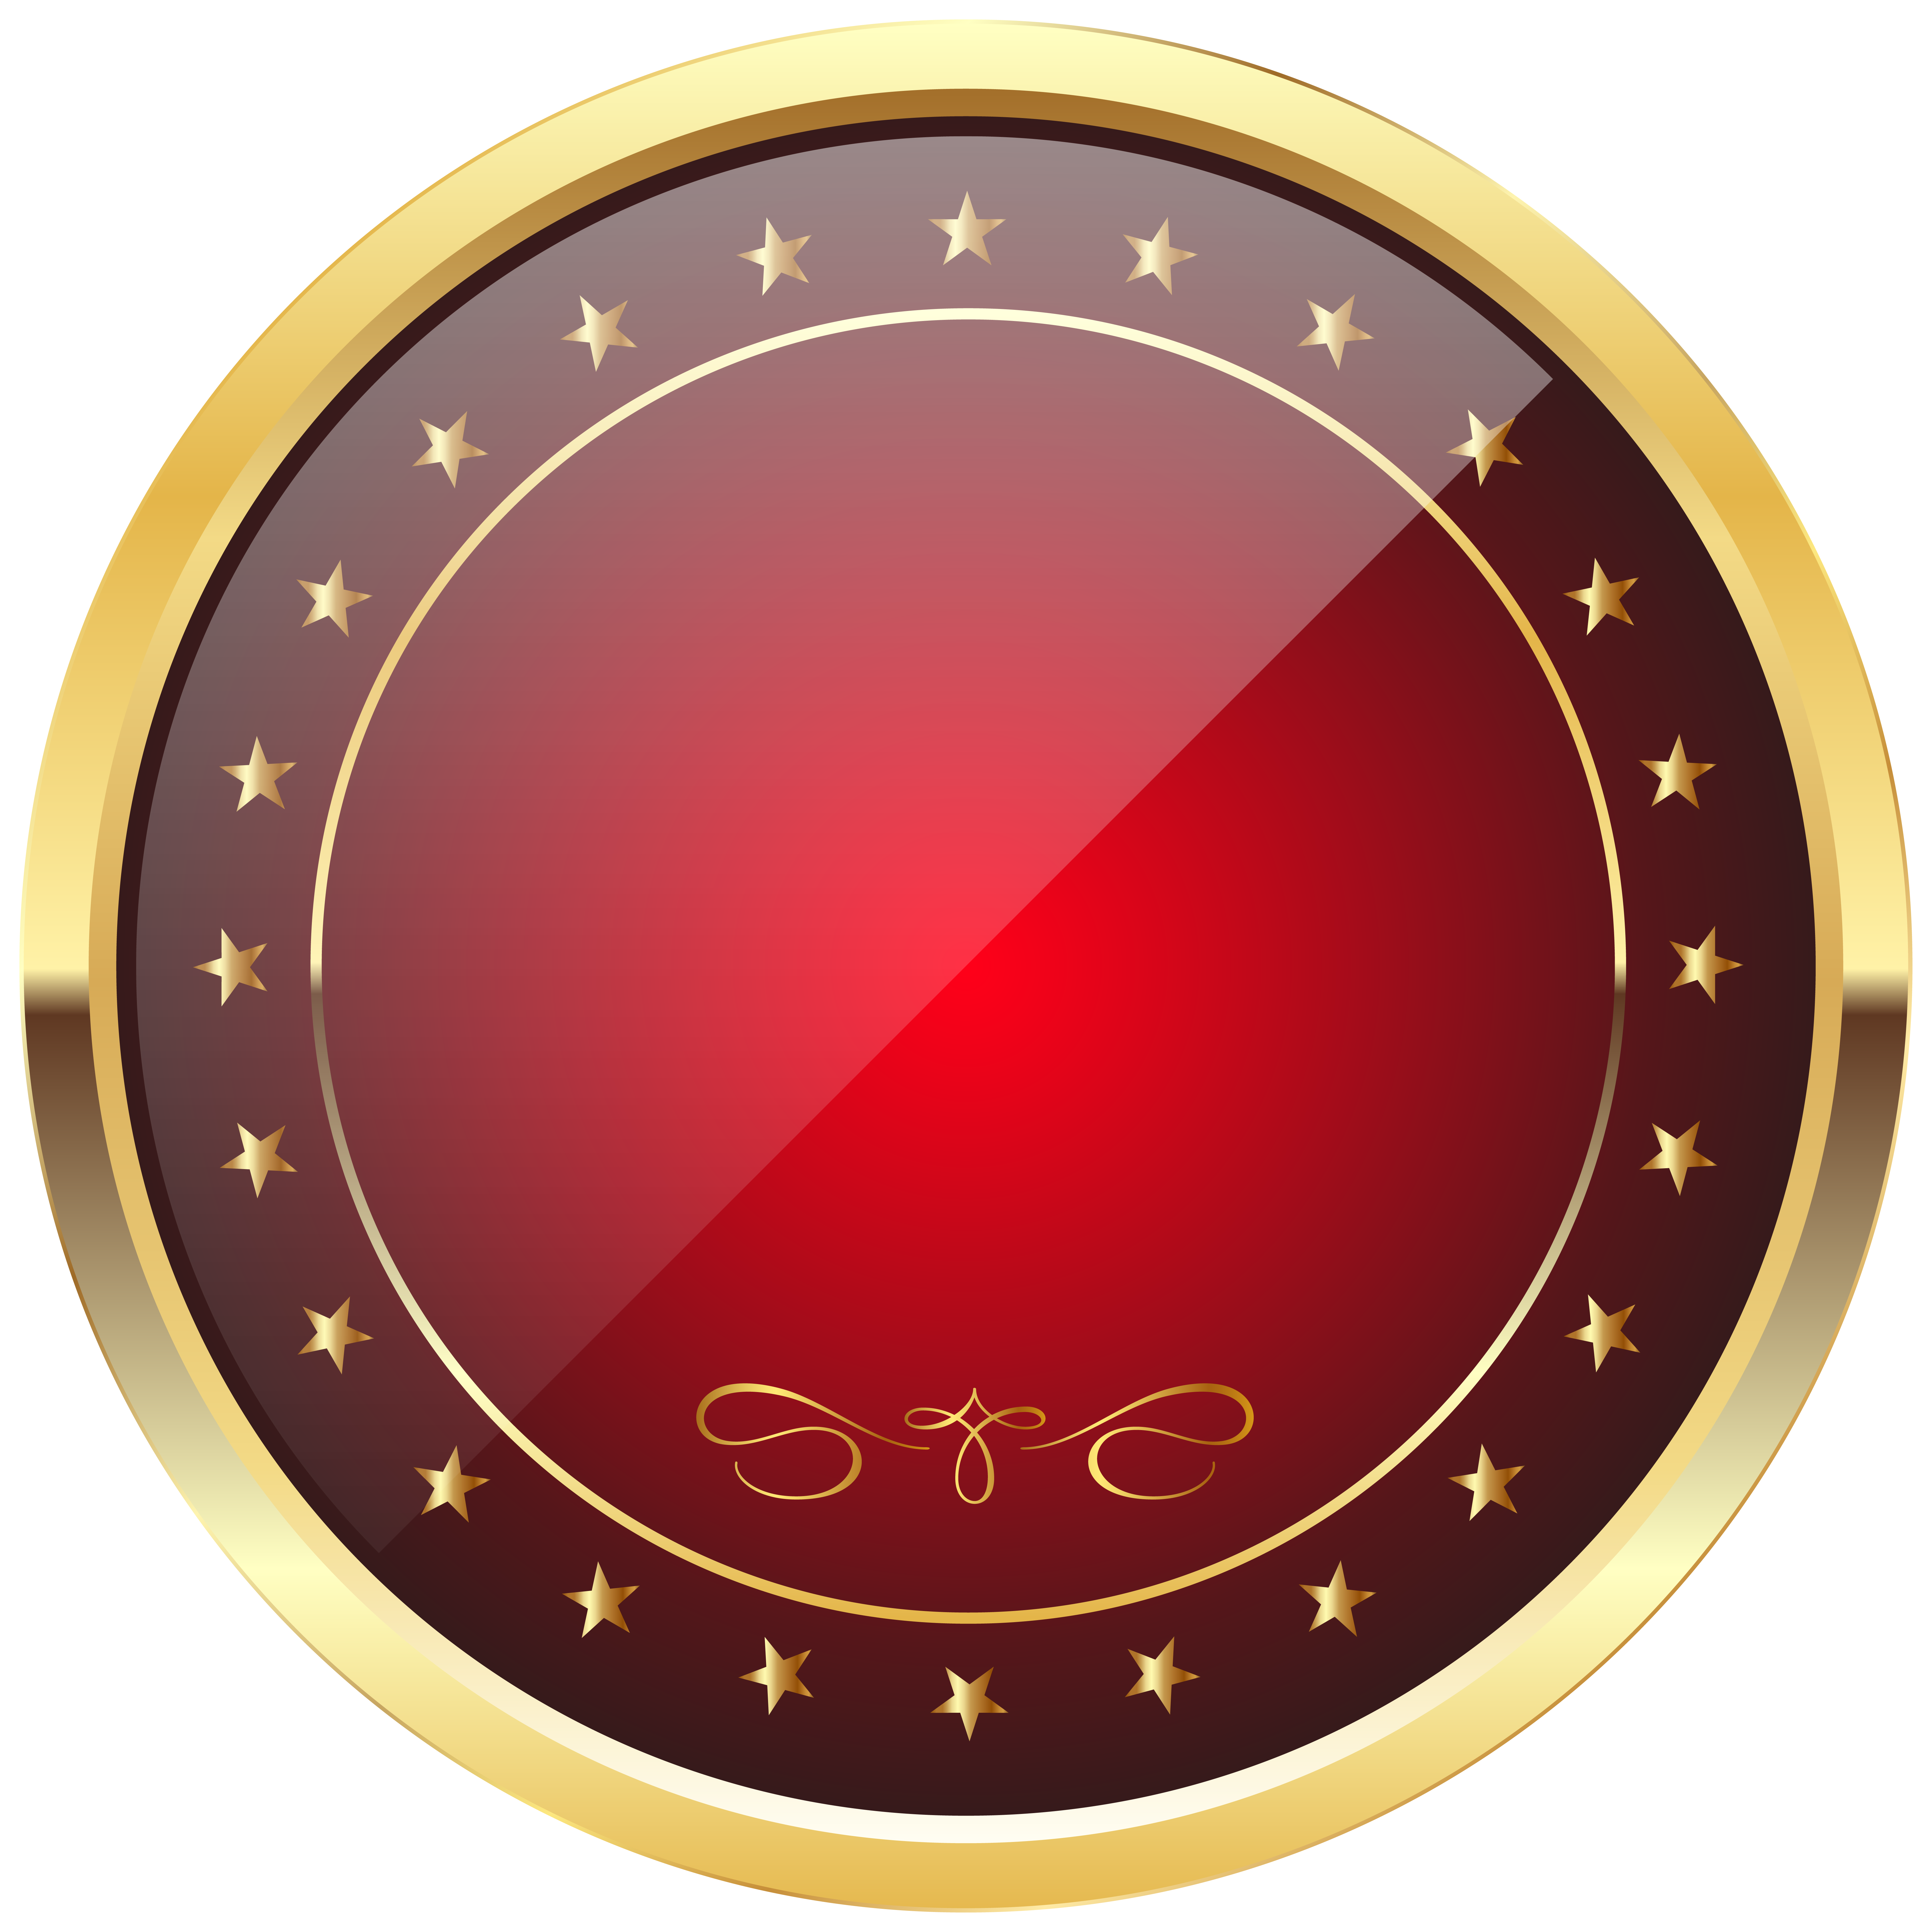 Badge transparent golden. Red and gold template